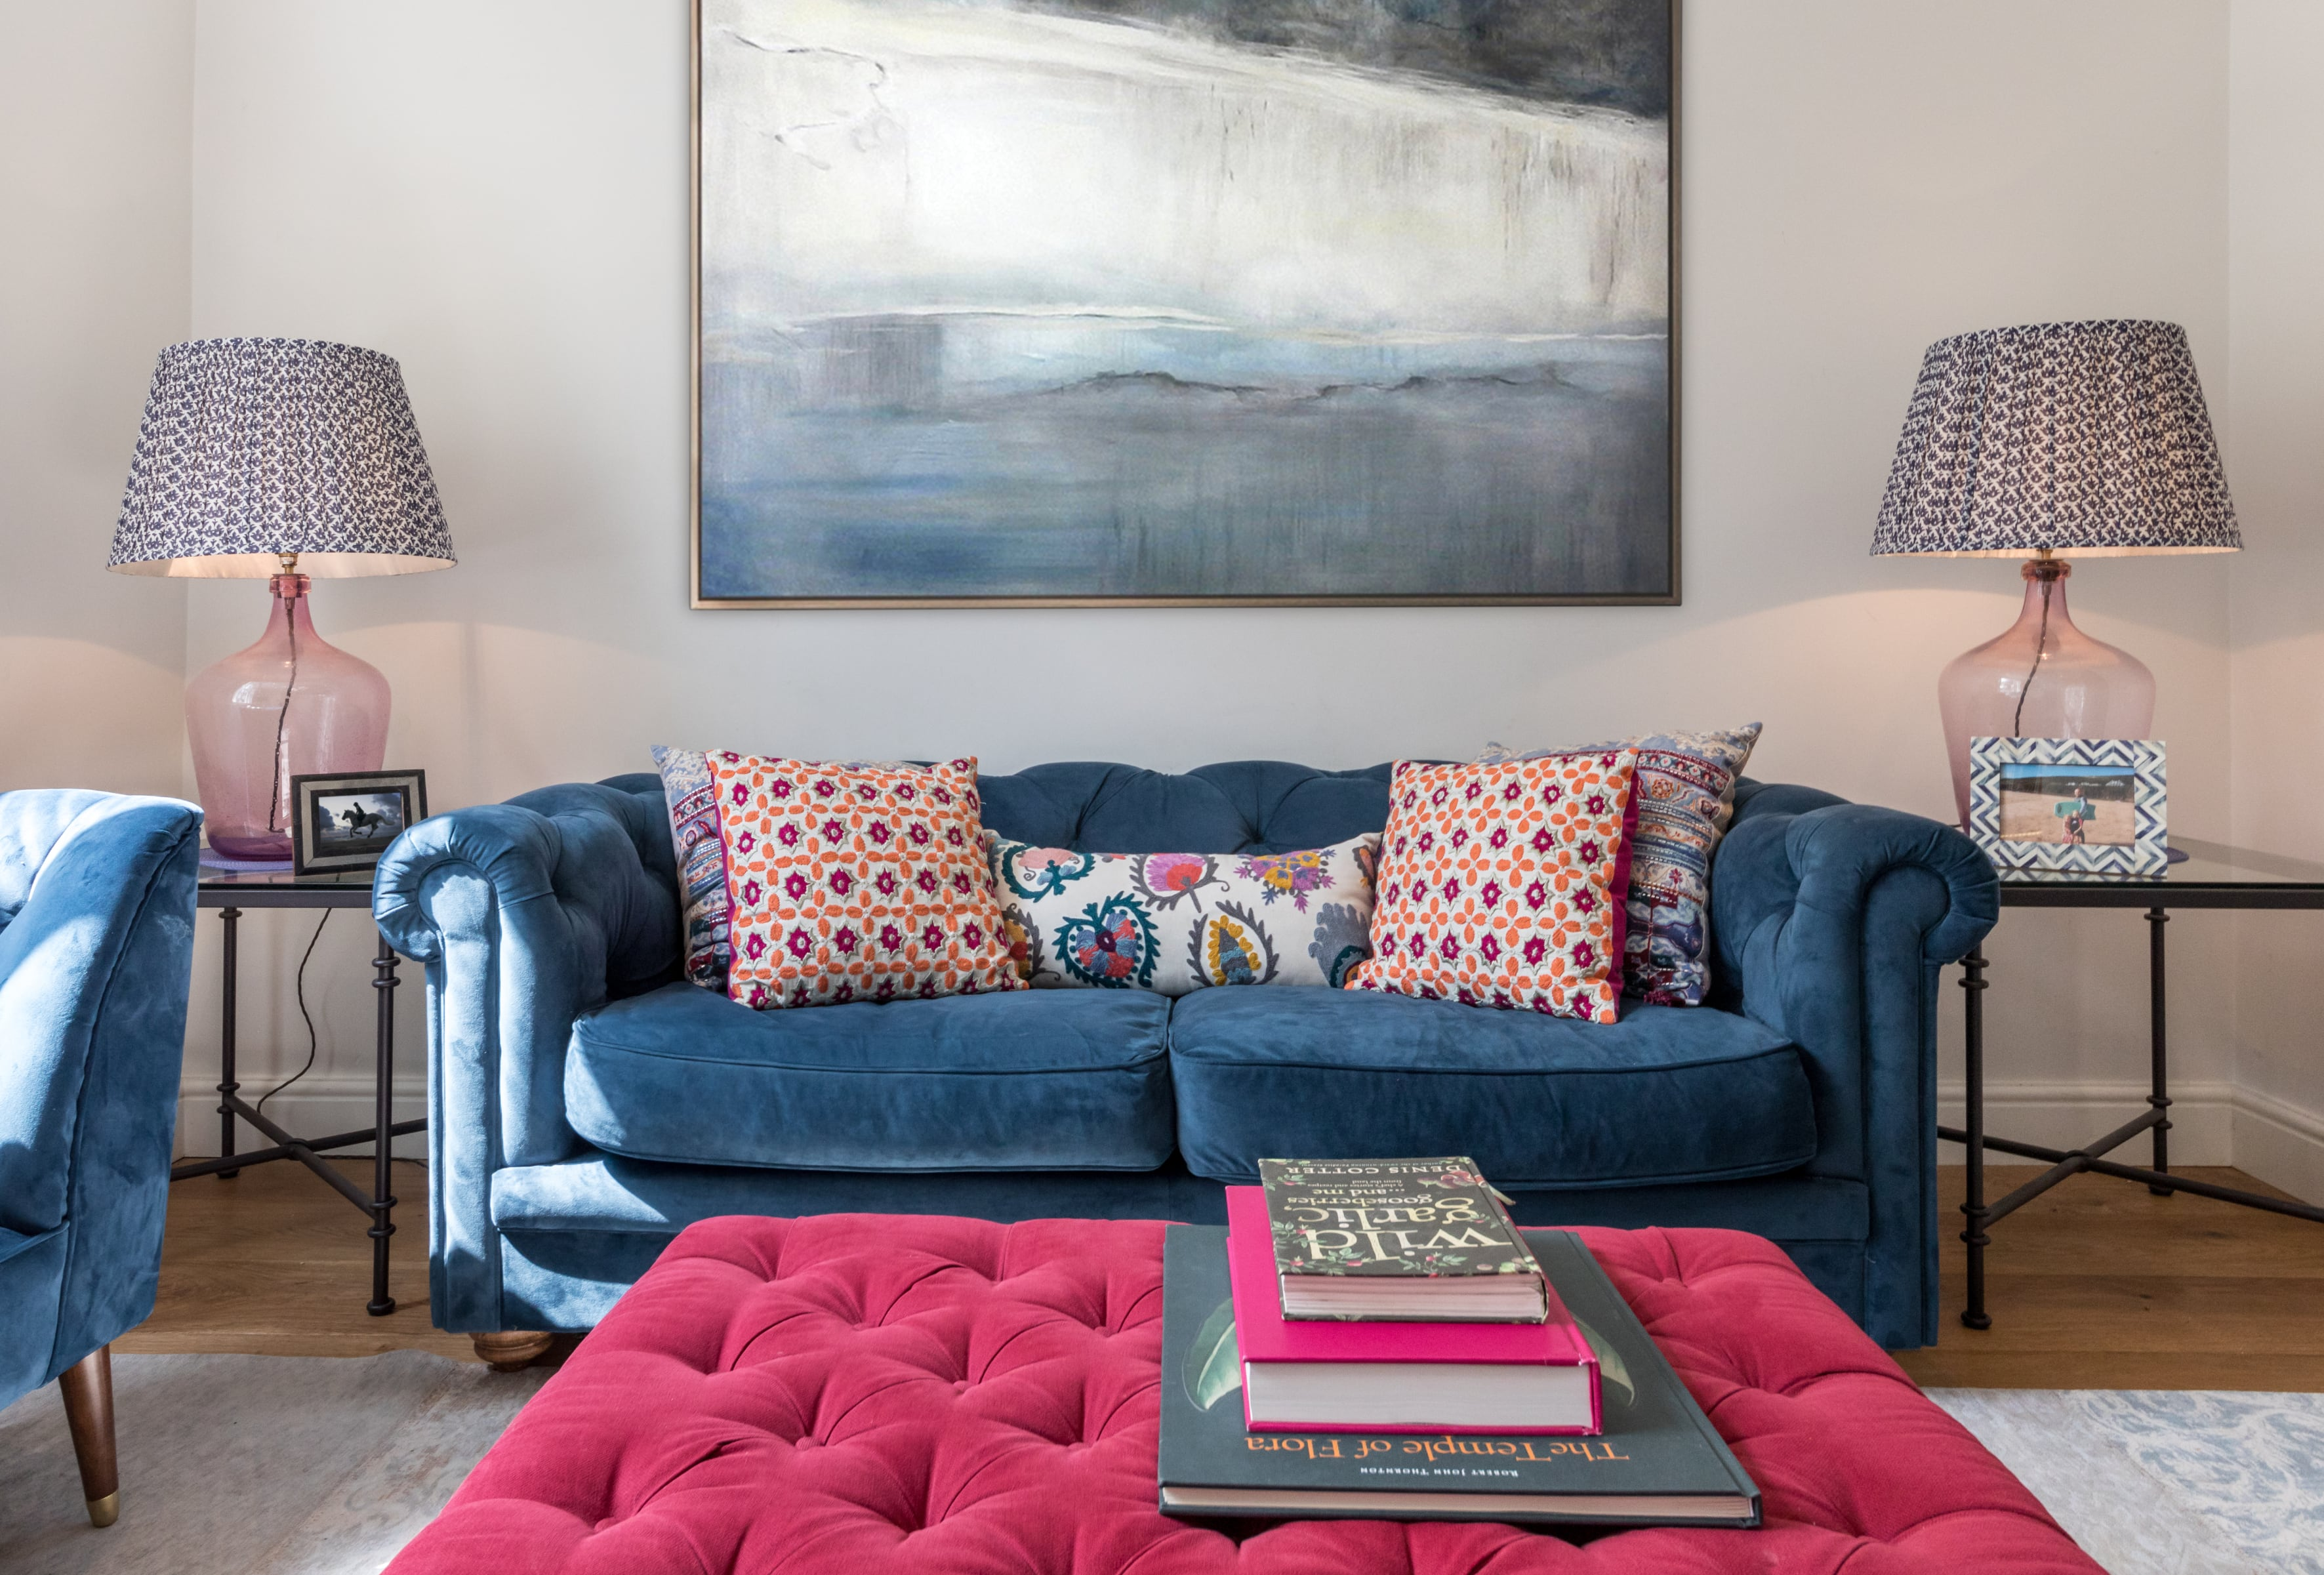 Luxury living room design with blue sofa and colourful cushions